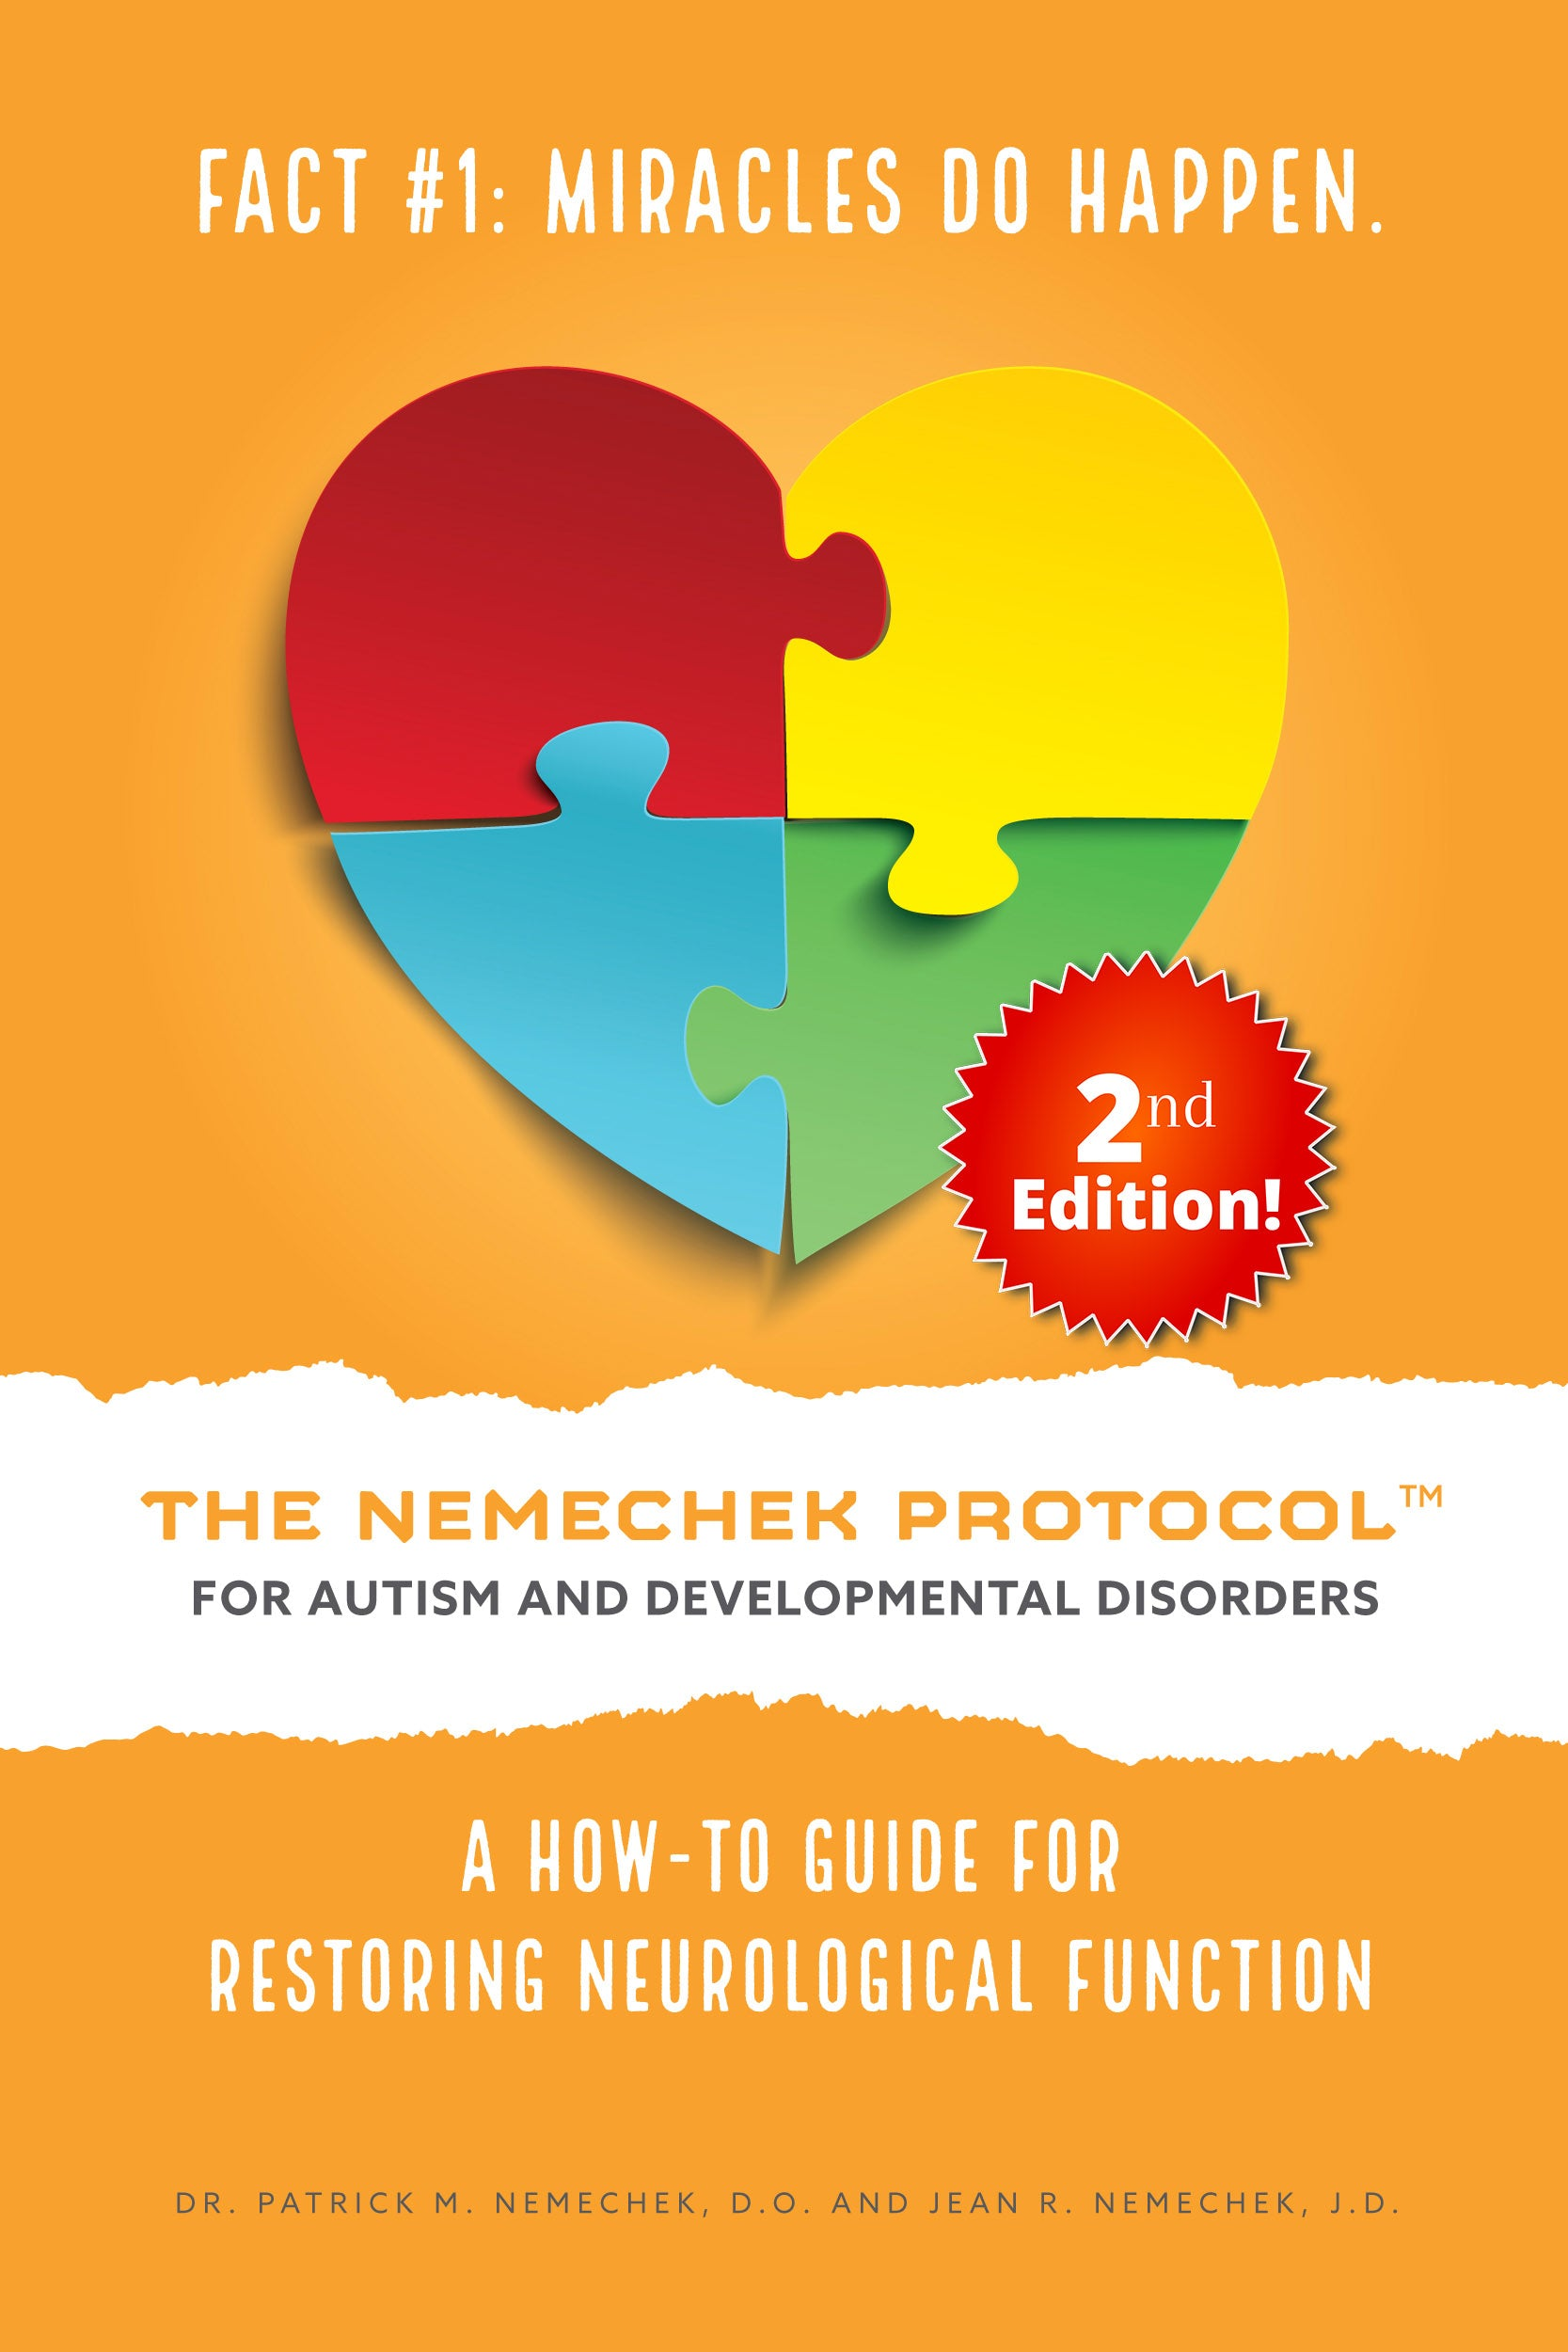 Pre-Order Bulk (50 Copies) Purchase - 2nd Edition, The Nemechek Protocol for Autism and Developmental Disorders